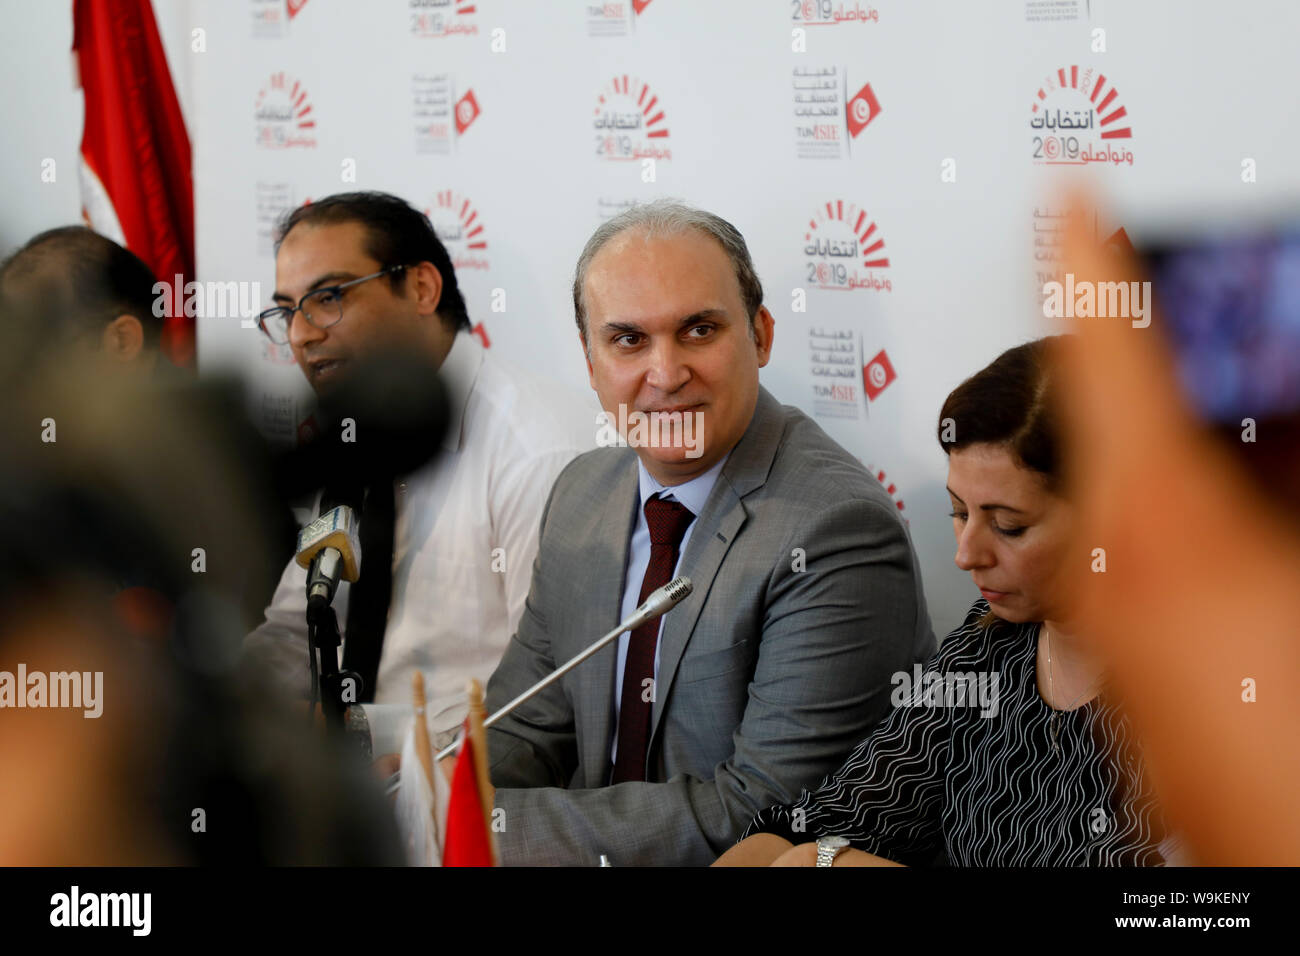 Tunis, Tunisia. 14th Aug, 2019. The head of Tunisia's Independent High Authority for elections (ISIE) Nabil Baffoun speaks during a press conference to announce the approved candidacies for the upcoming presidential election. Twenty-six candidacies to the Tunisian presidential election of September 15 have been validated and 71 rejected. Credit: Khaled Nasraoui/dpa/Alamy Live News Stock Photo